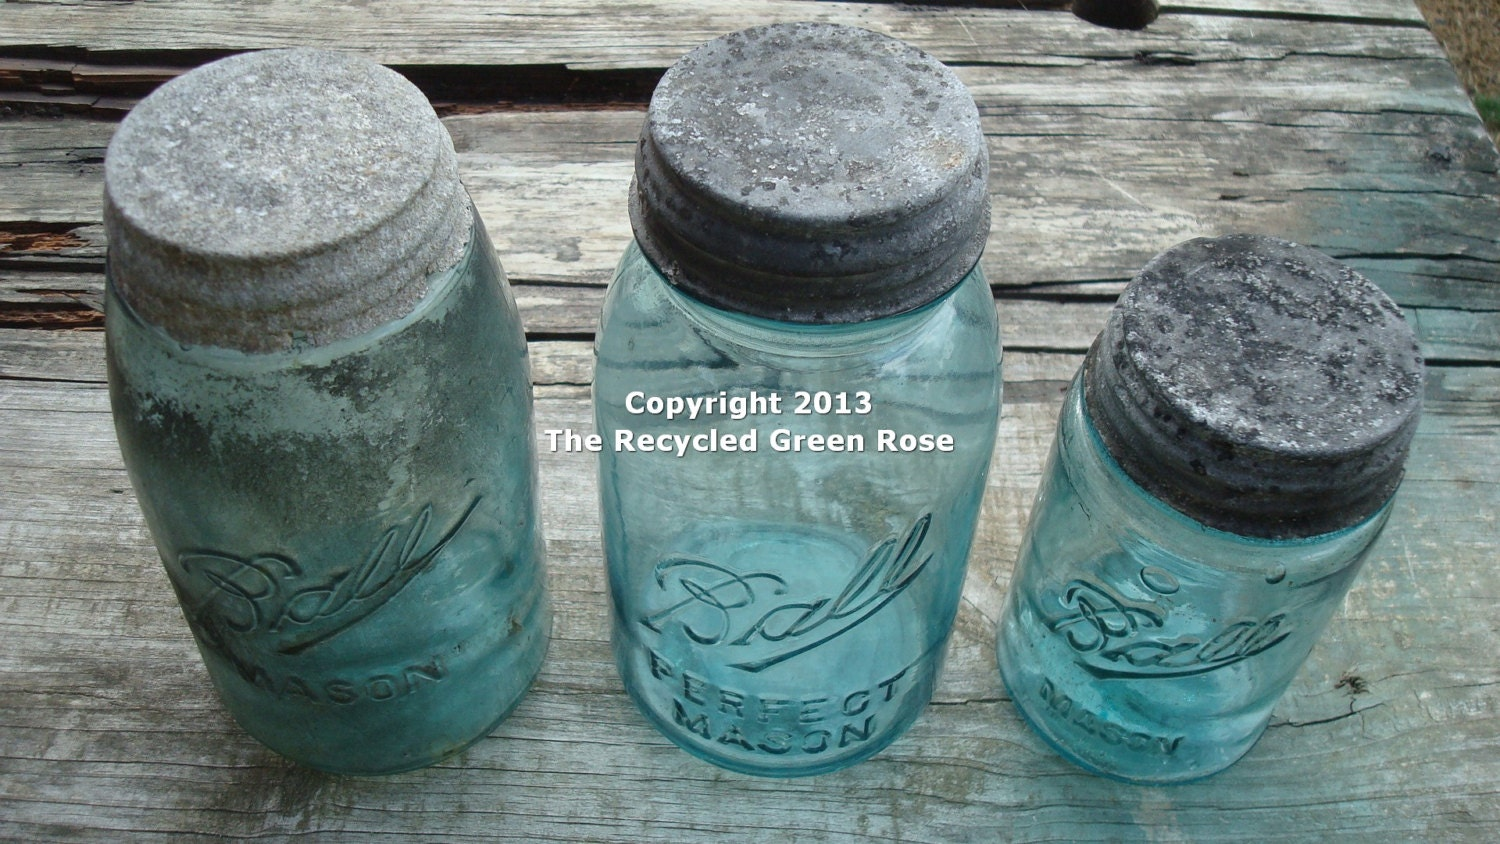 Three Antique Ball Mason Jars - Blue/Green Tint - with Lids - TheRecycledGreenRose